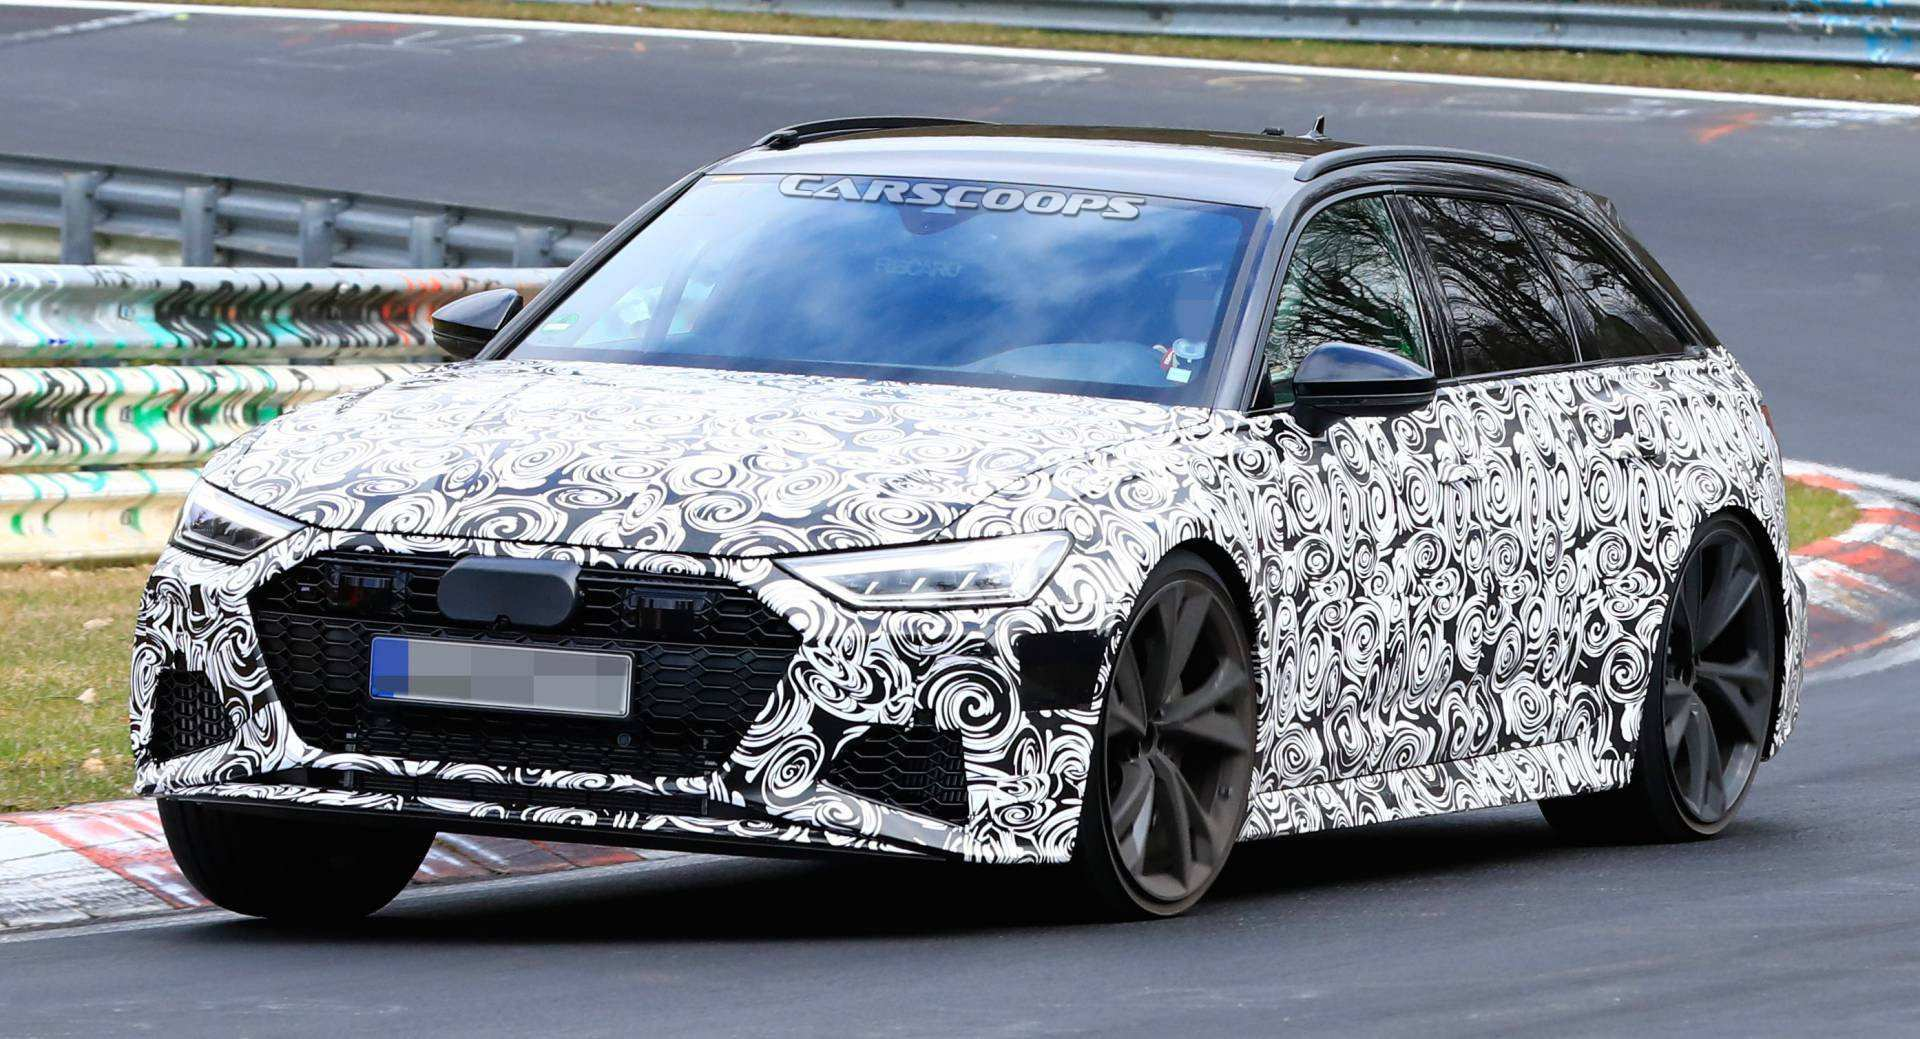 12 Gallery of 2020 Audi Rs6 Avant Usa Rumors with 2020 Audi Rs6 Avant Usa